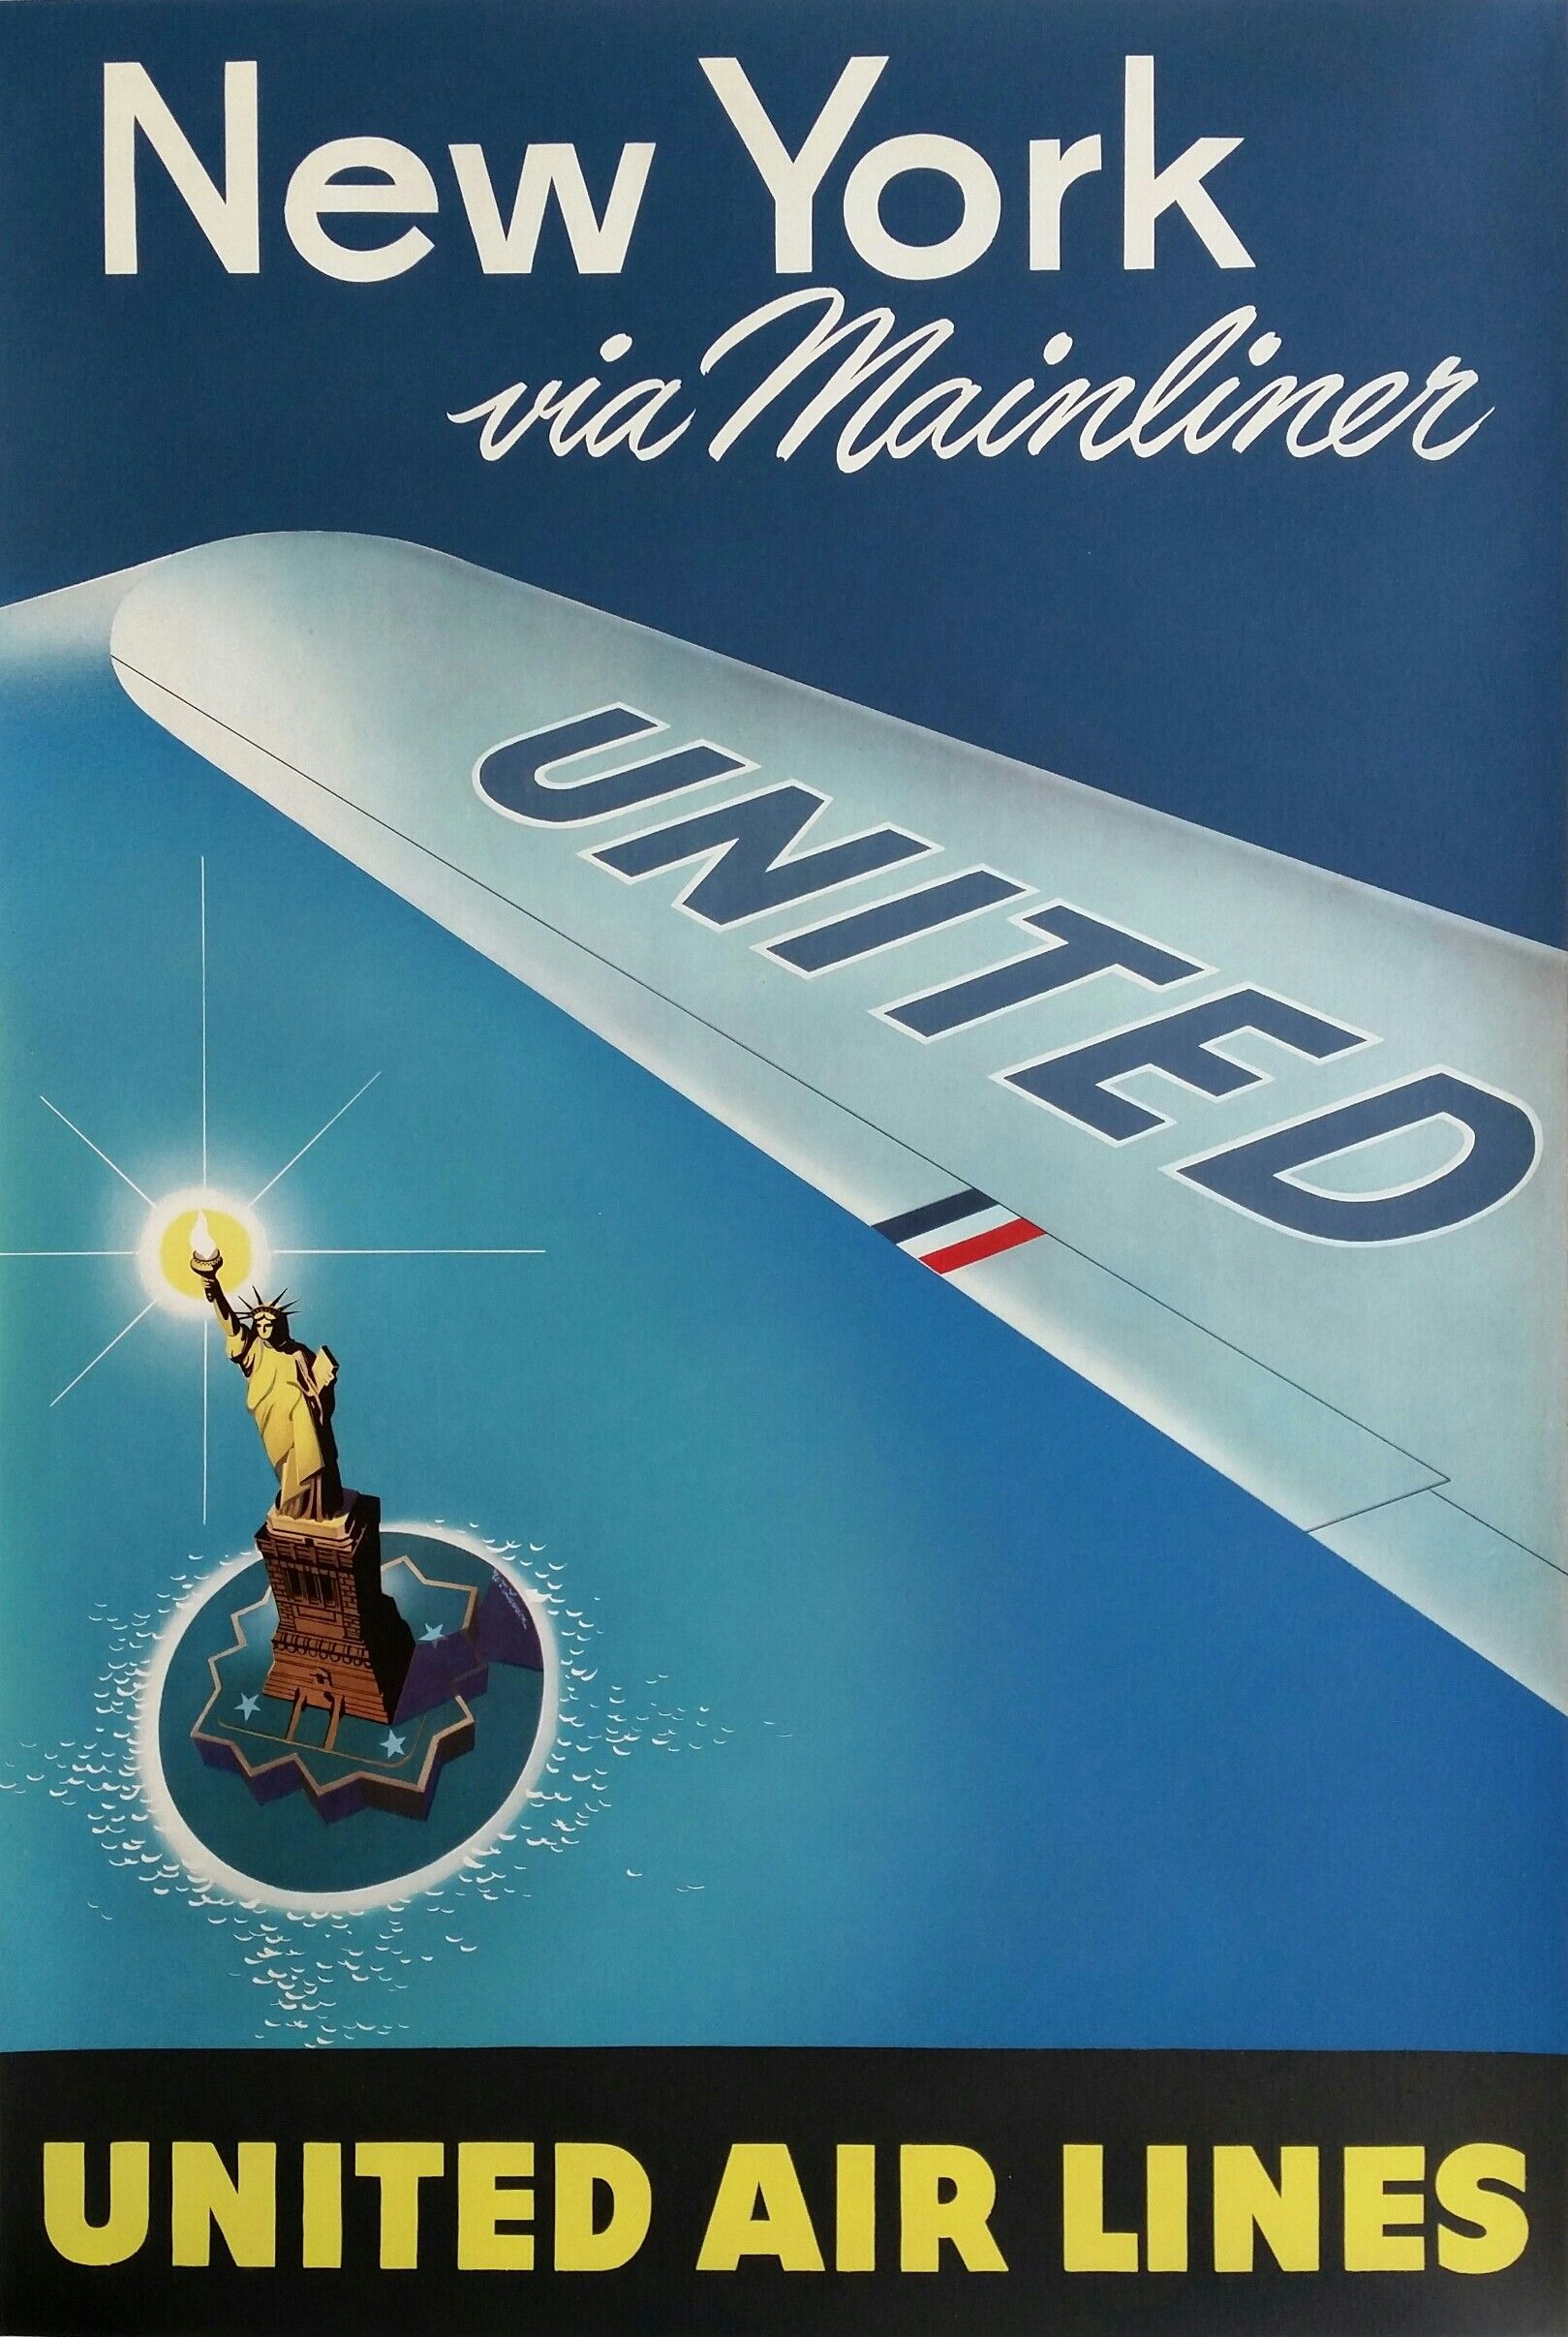 original vintage poster united airlines new york via mainliner affiche passion vintage. Black Bedroom Furniture Sets. Home Design Ideas